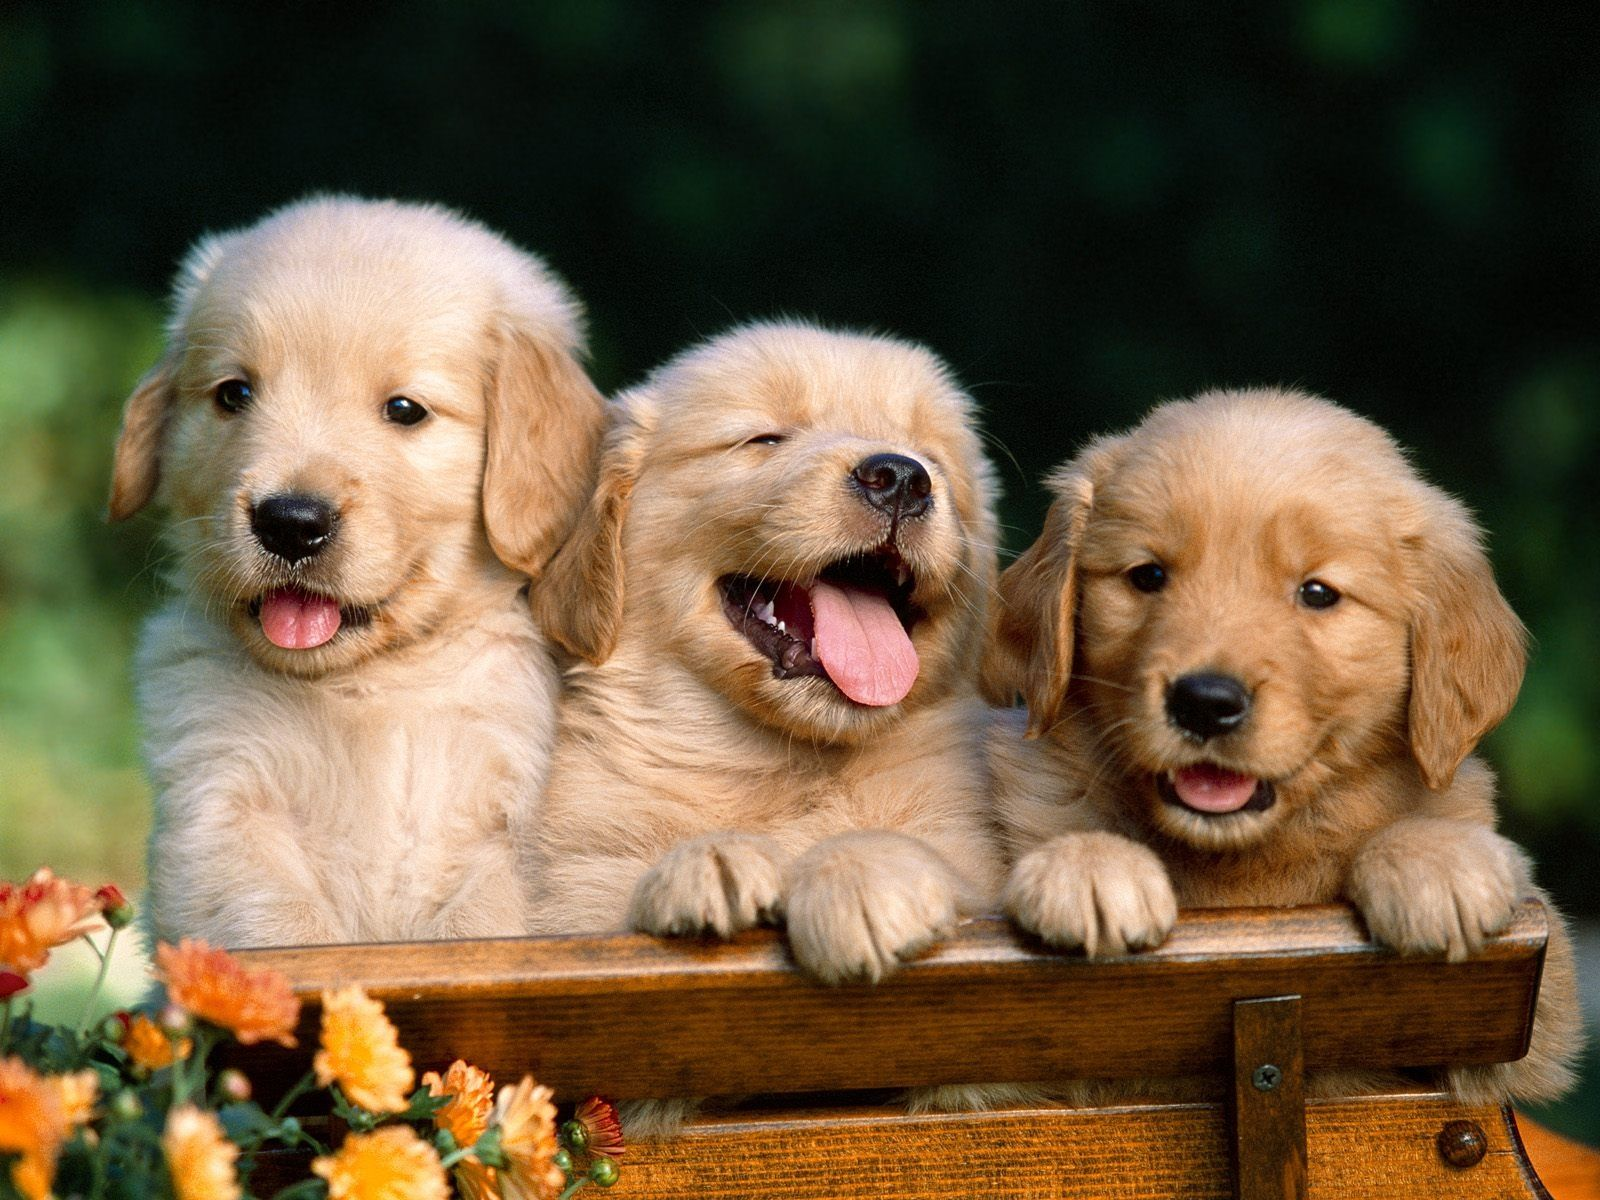 Background Wallpaper Puppies Wallpaper Hd Background Wallpaper 157 Hd Wallpapers Facebook Cute Animals Puppies Cute Dogs